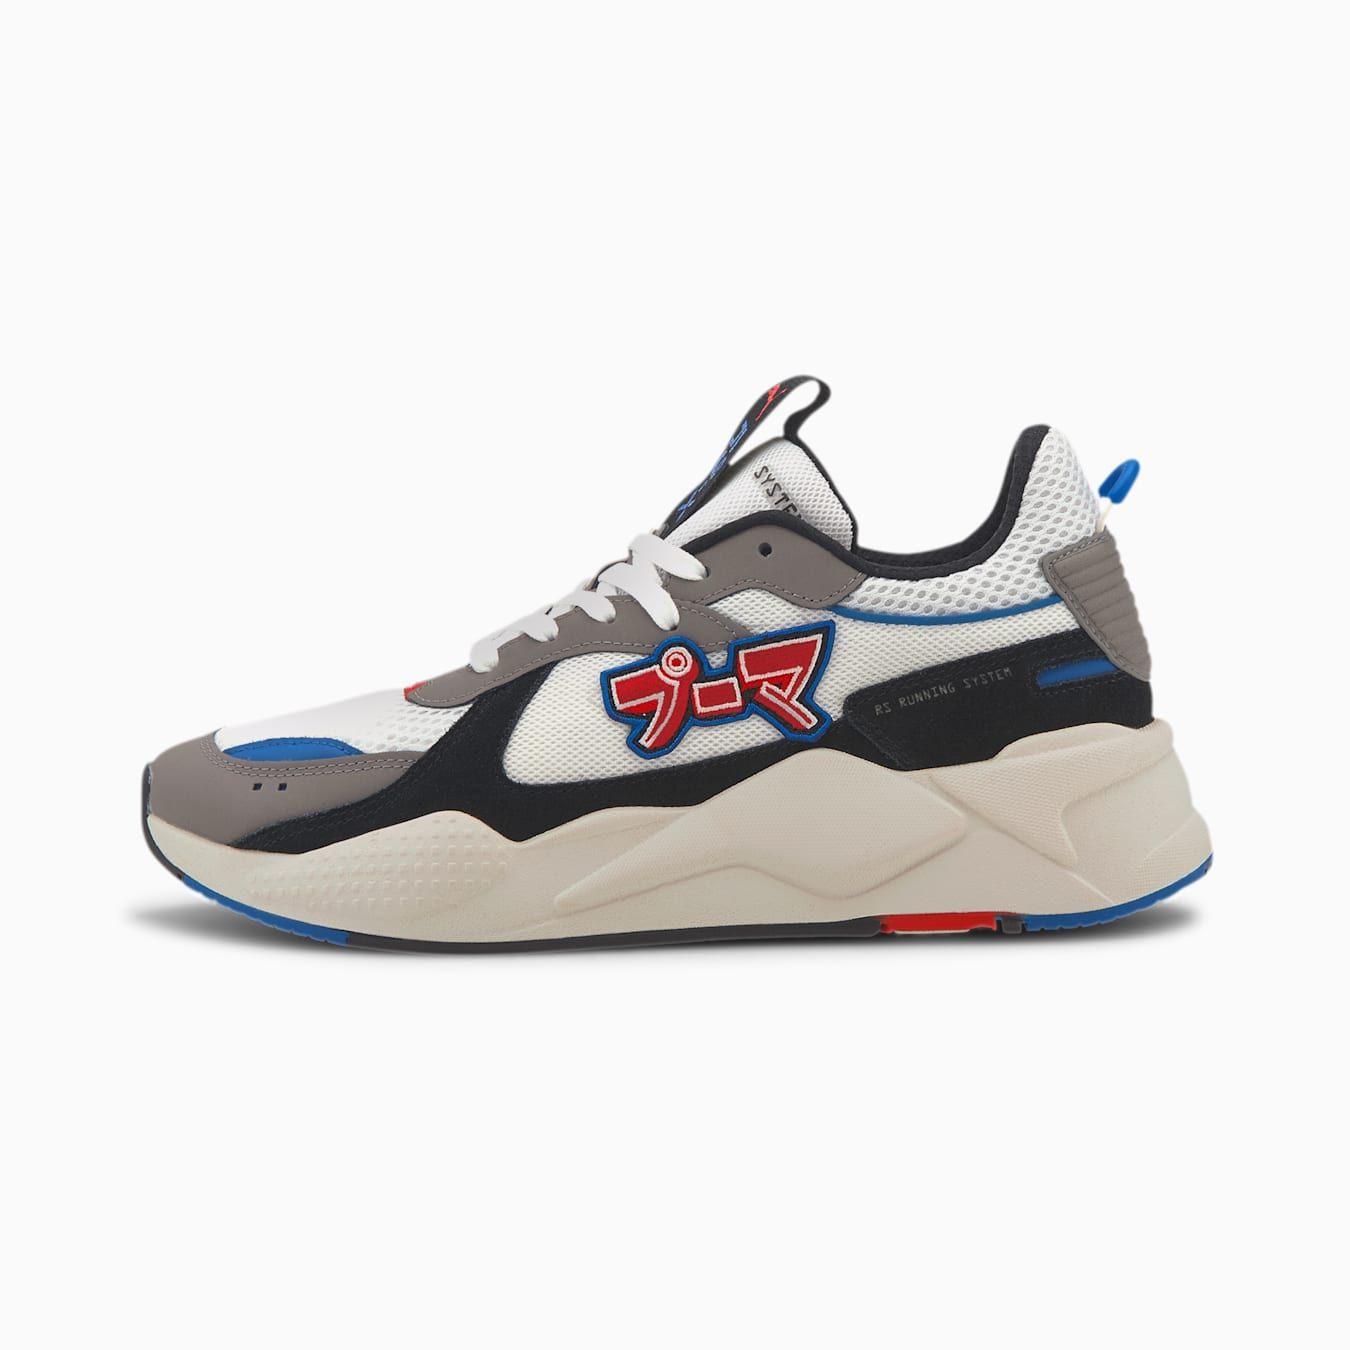 プーマ PUMA レディーススニーカー RS-X JAPANORAMA 374294【FITHOUSE ONLINE SHOP】